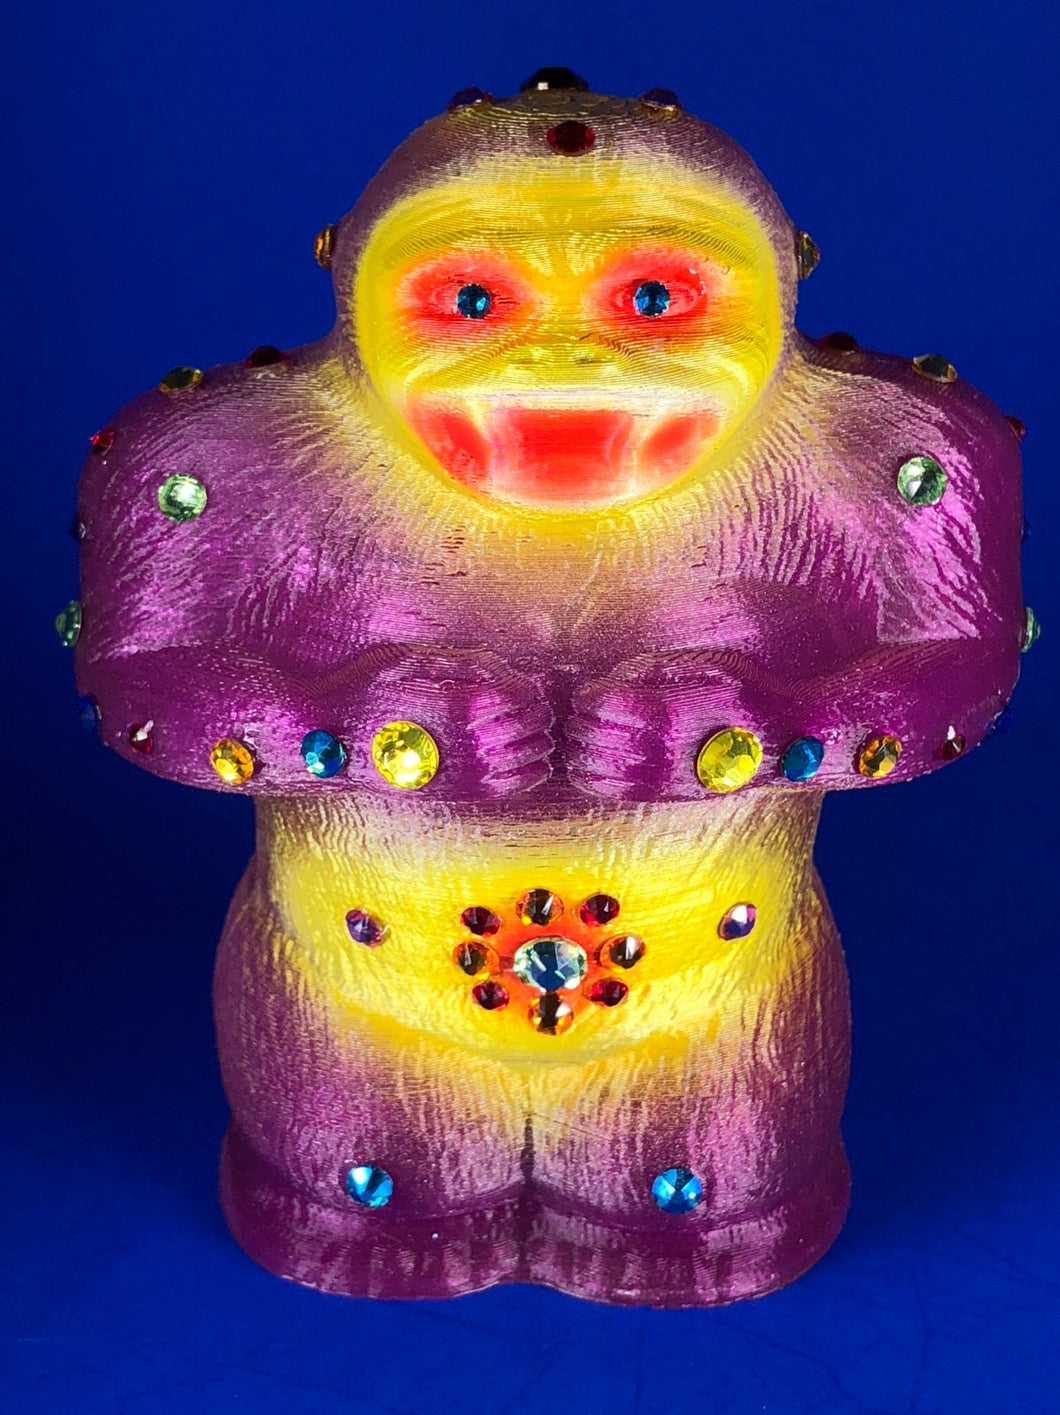 Super squat Ape with 44 rhinestones and a giant eyeball on his back